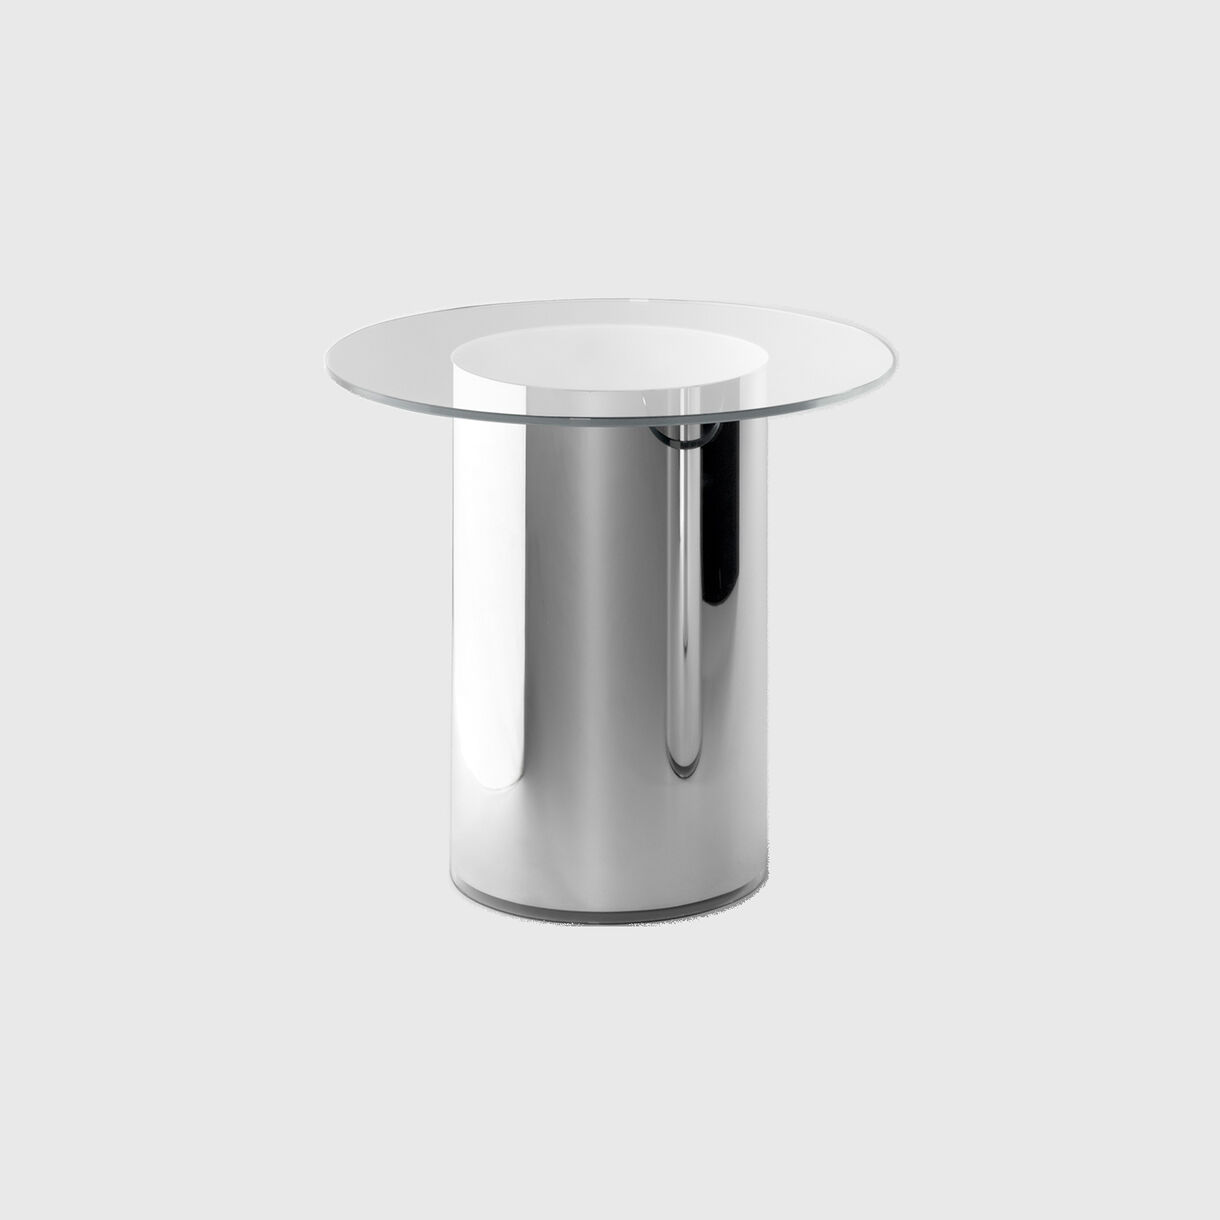 2001 Side Table, Tall